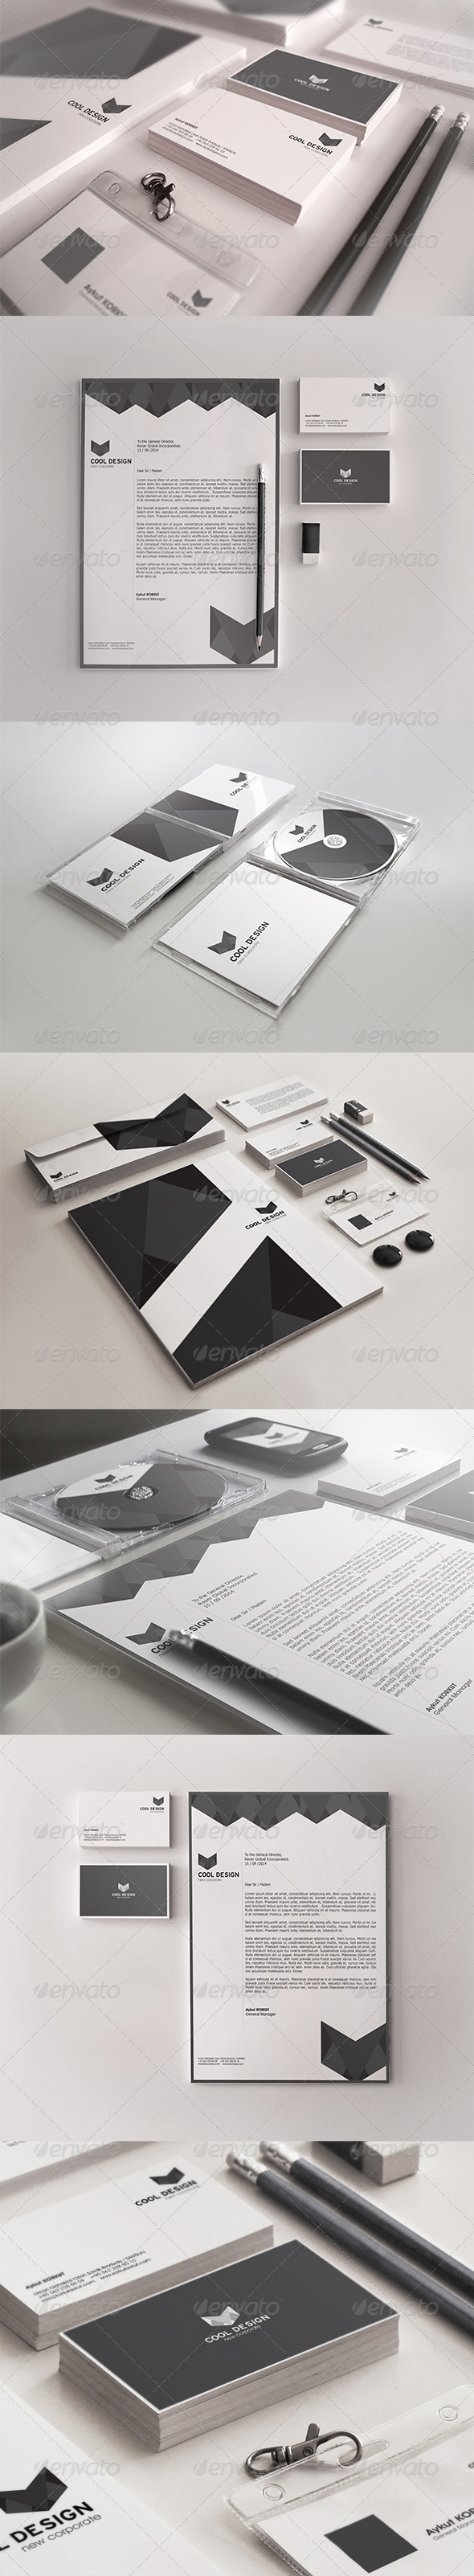 GraphicRiver Cool Design Corporate Identity Package 7994617